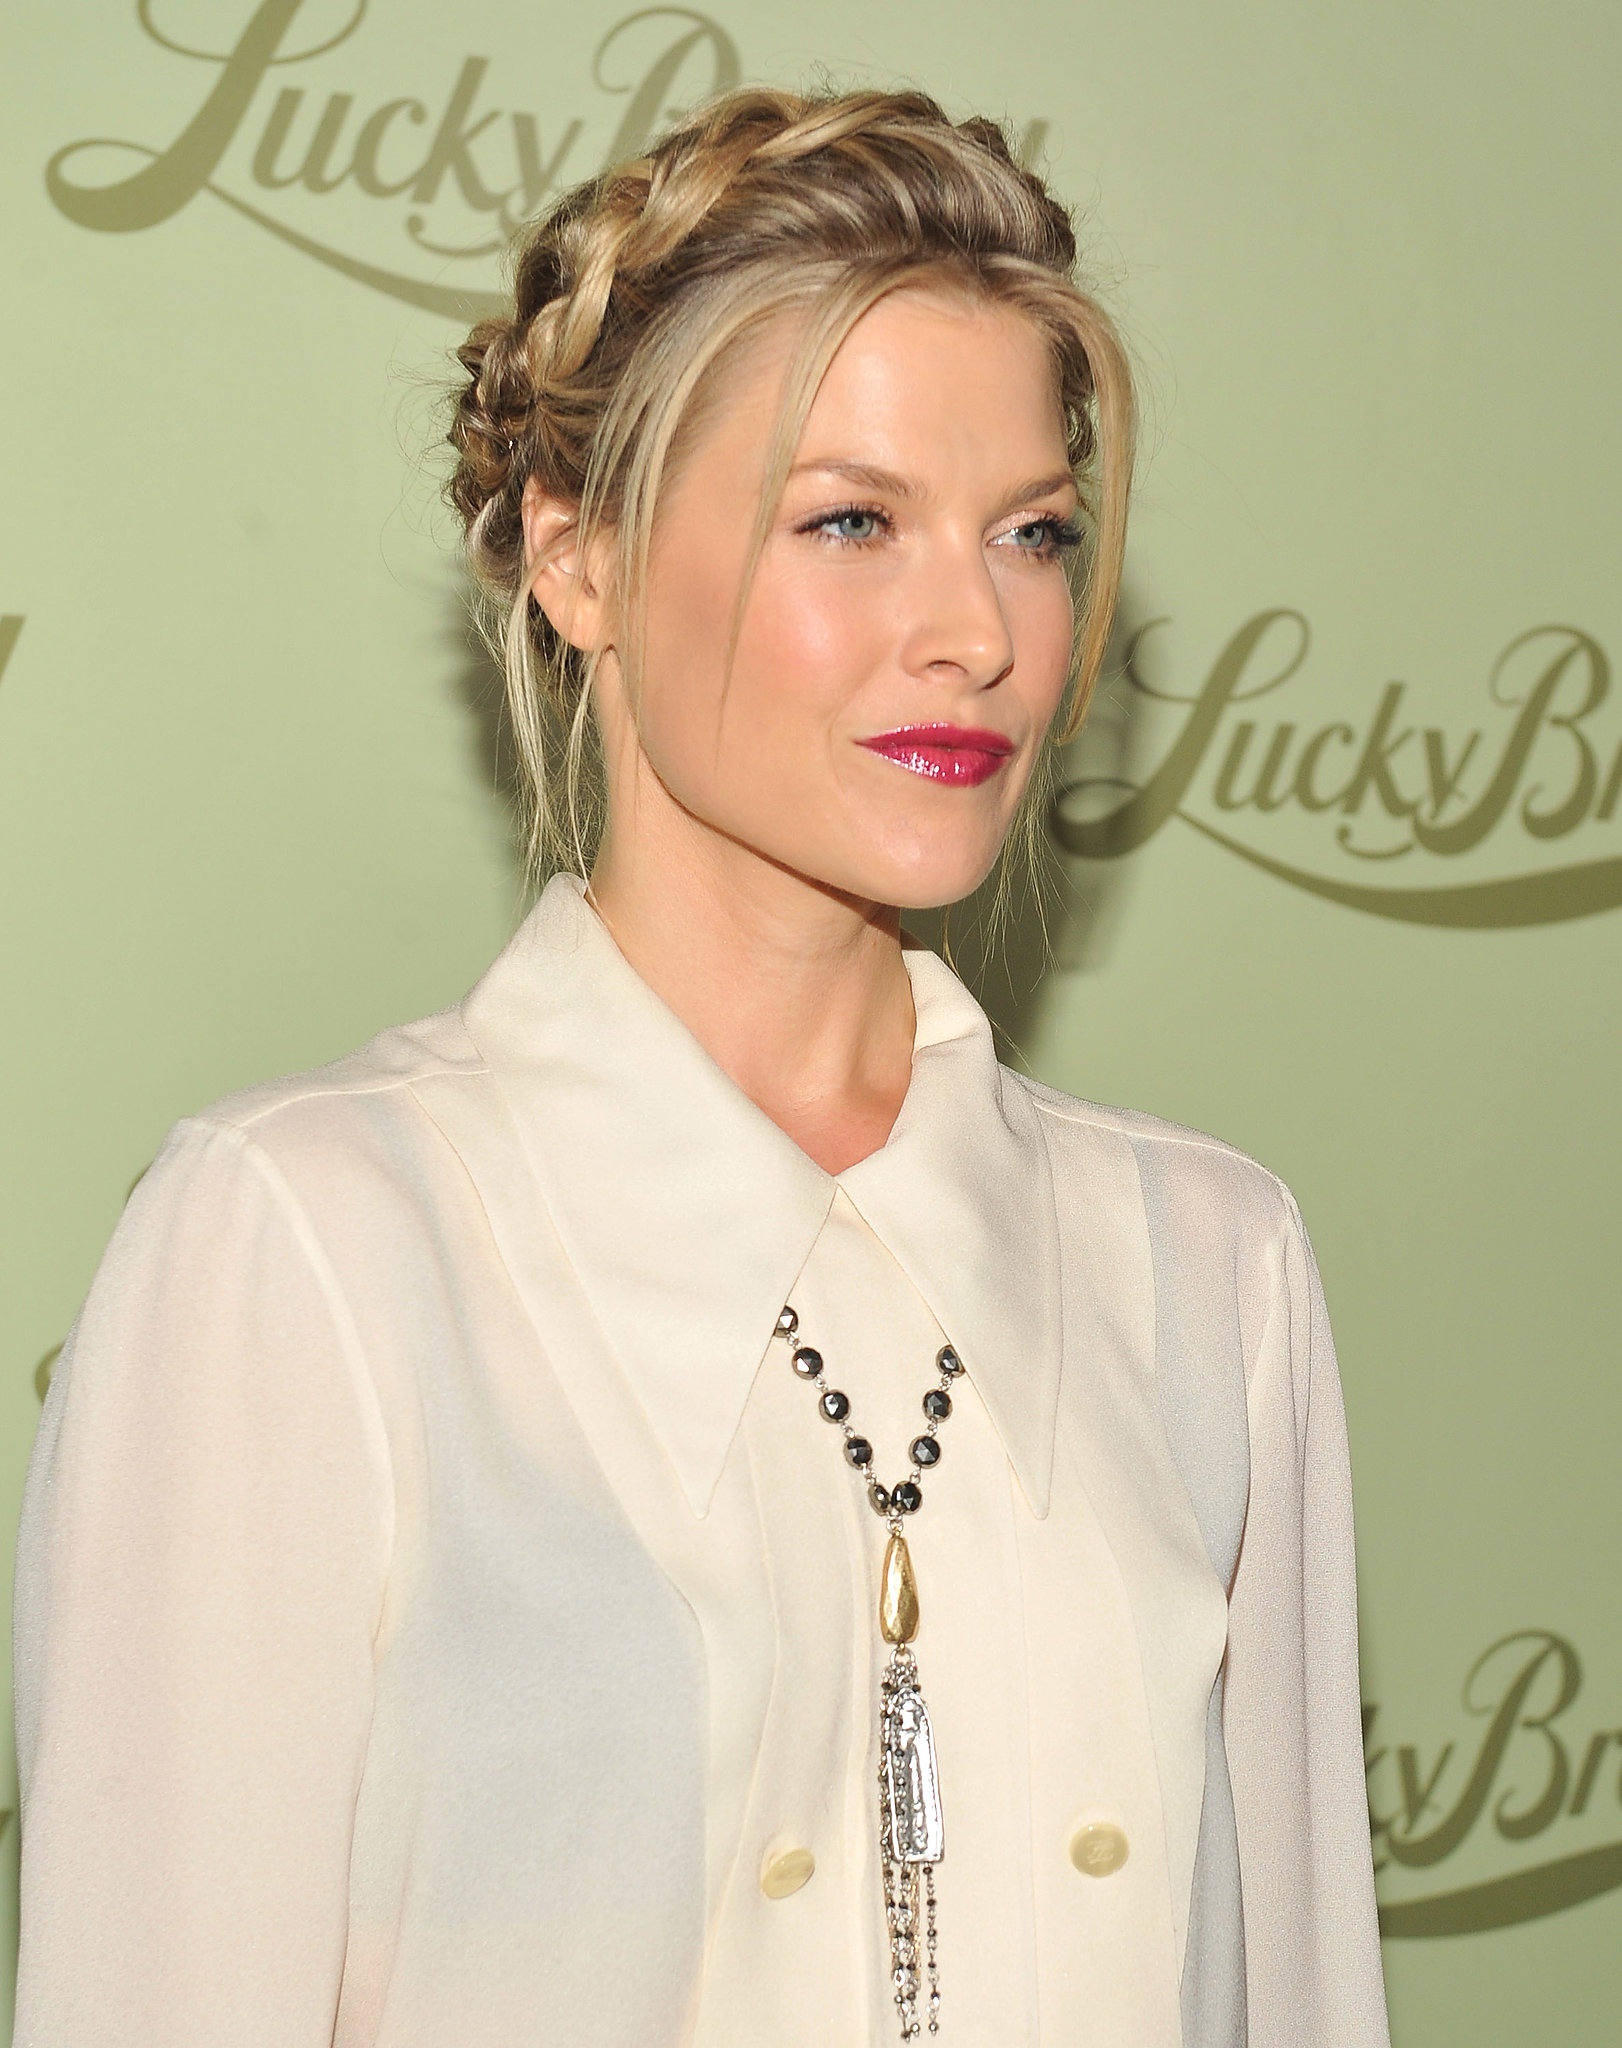 Ali Larter's crown braid wrapped around her entire head for a more intricate style.